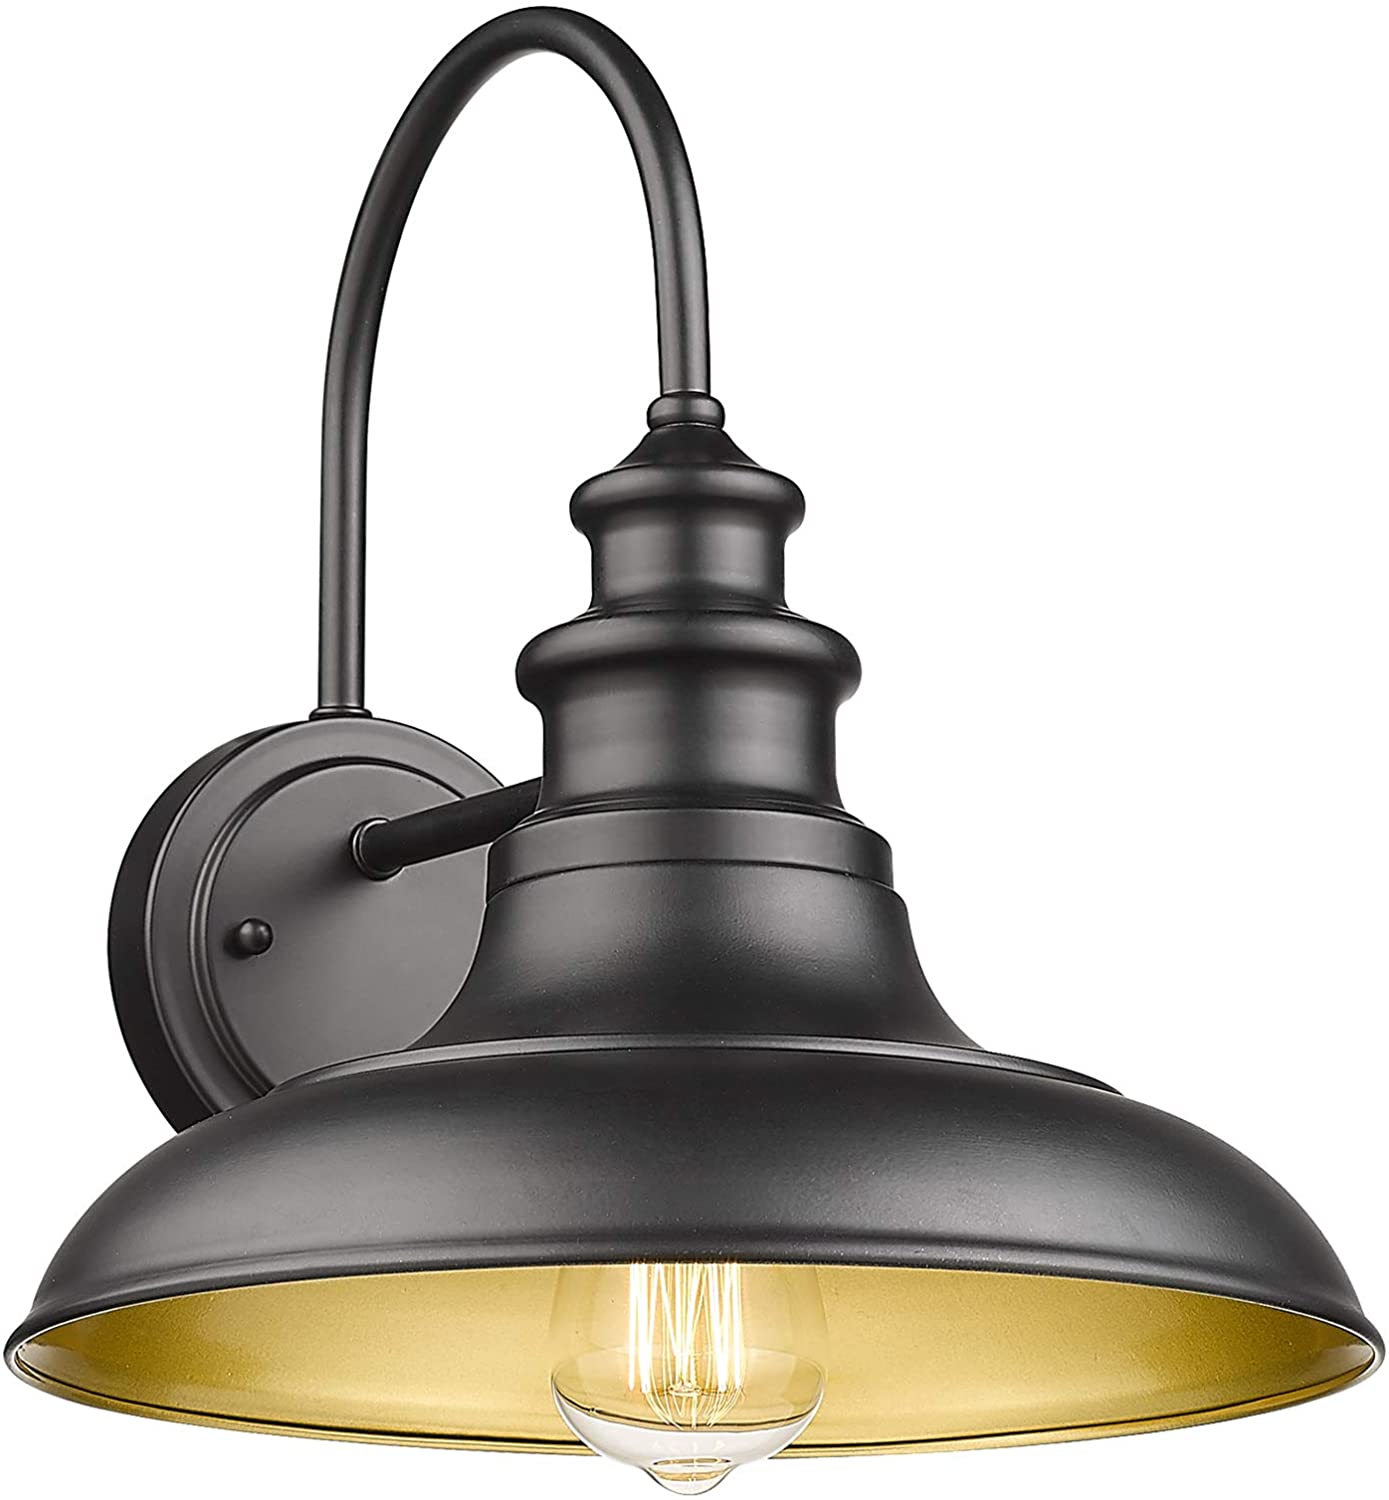 Diyel Outdoor Barn Light Challenge the lowest price of Japan ☆ Fixtures Max 56% OFF Farmhouse Exterior Li